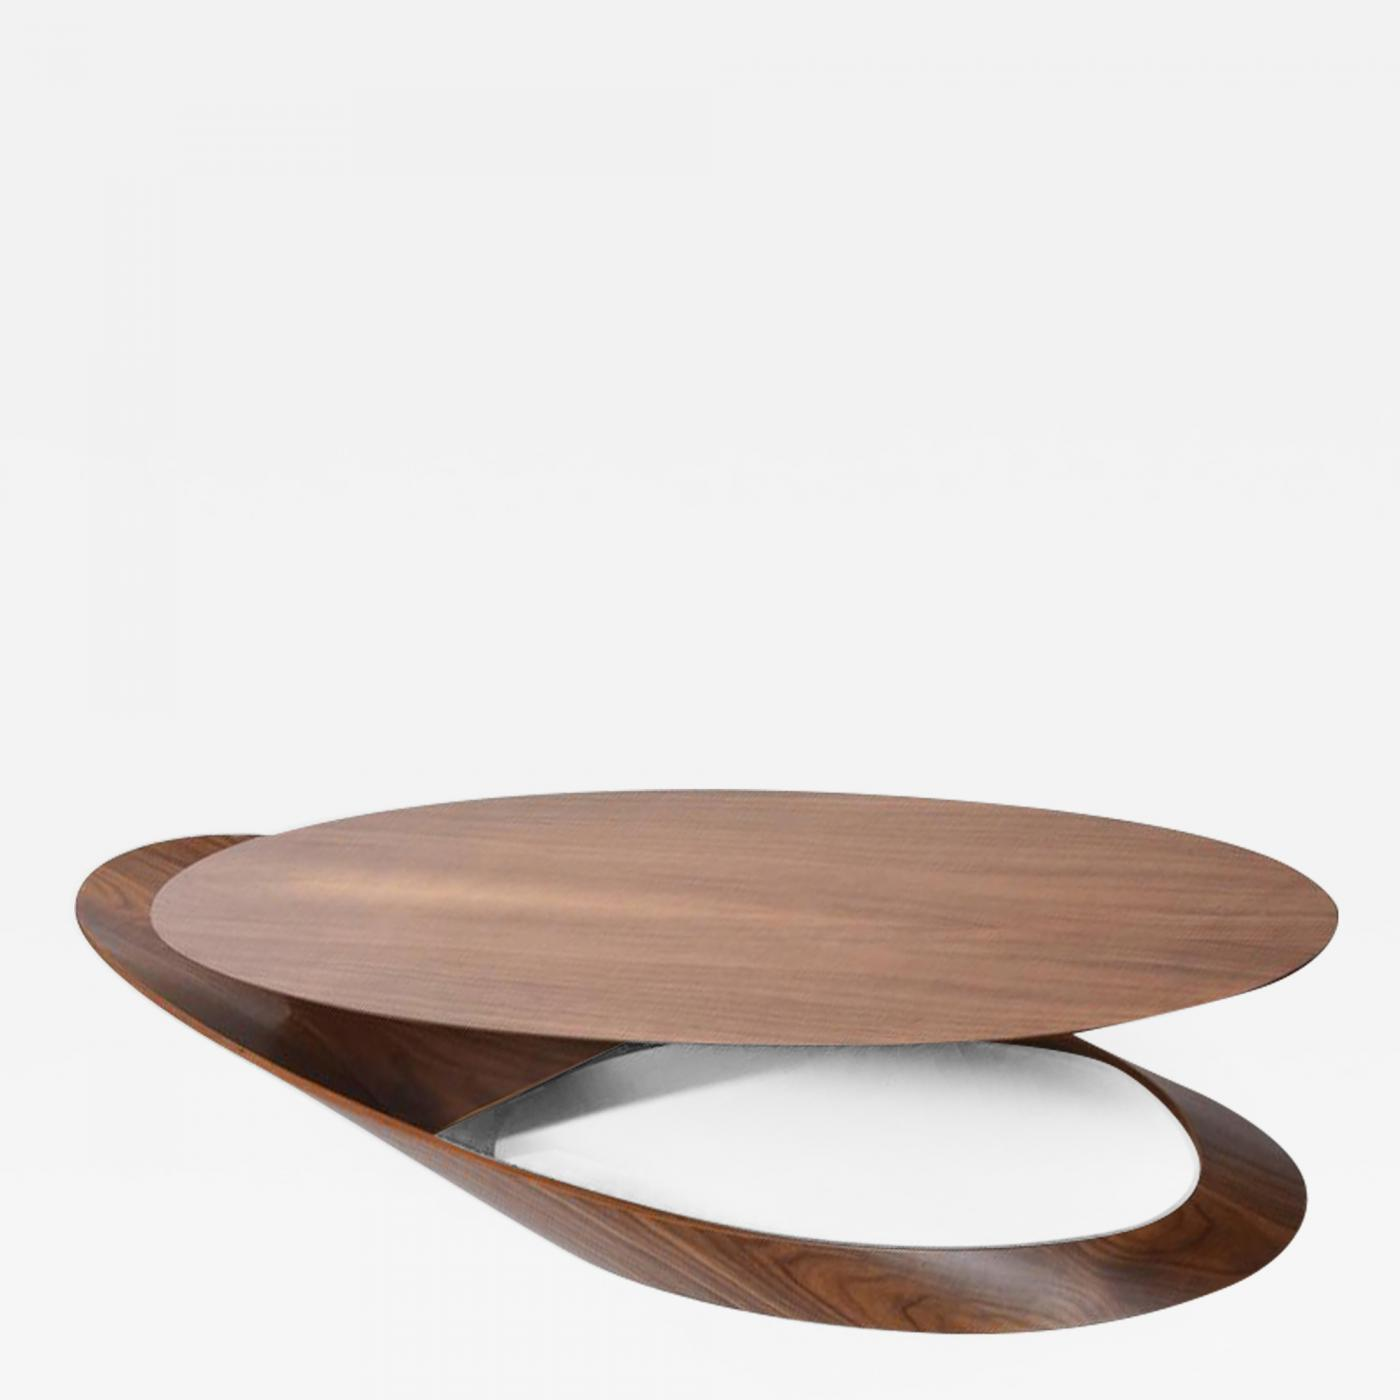 Fabulous Opere E I Giorni Studio Large Italian Modern Architectural Coffee Table By Studio Lopere Ei Giorni Gmtry Best Dining Table And Chair Ideas Images Gmtryco